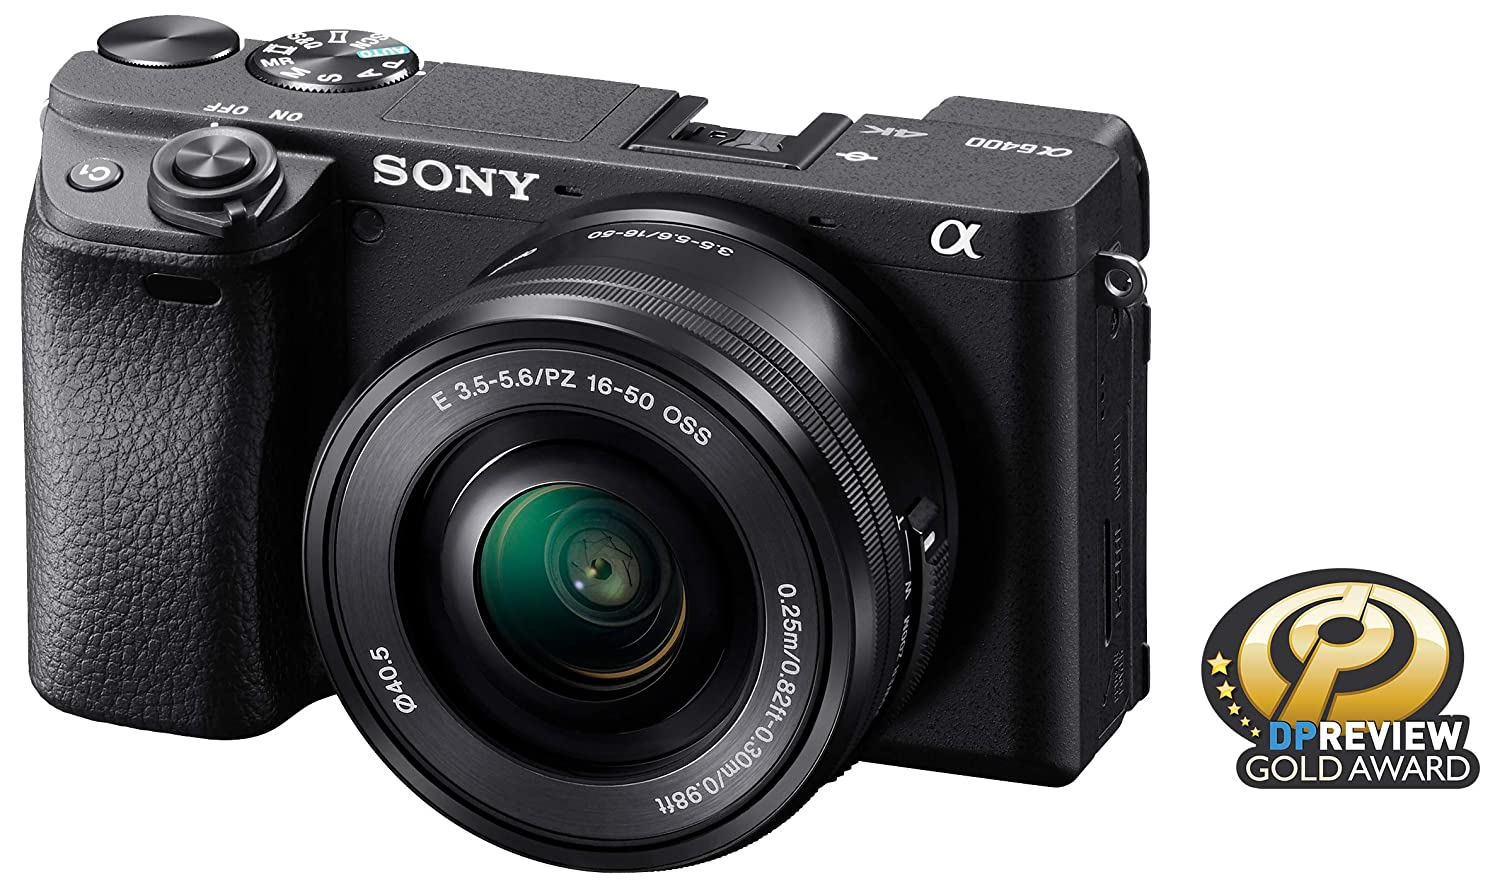 Sony Alpha a6400 Mirrorless Camera: Compact APS-C Interchangeable Lens Digital Camera with Real-Time Eye Auto Focus, 4K Video, Flip Screen & 16-50mm Lens